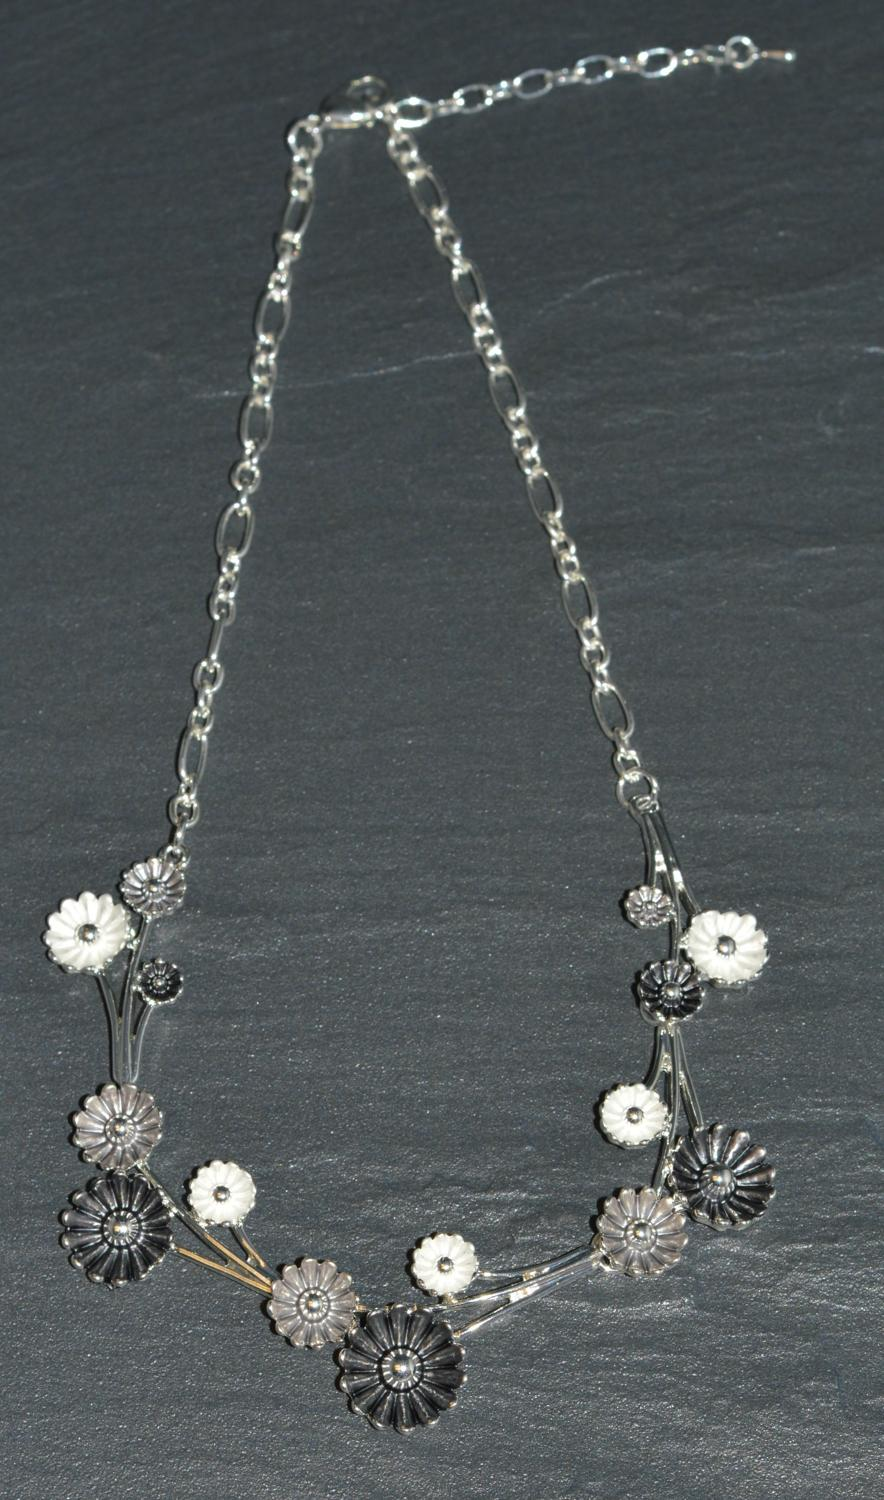 Black and White Enamel Daisy Necklace